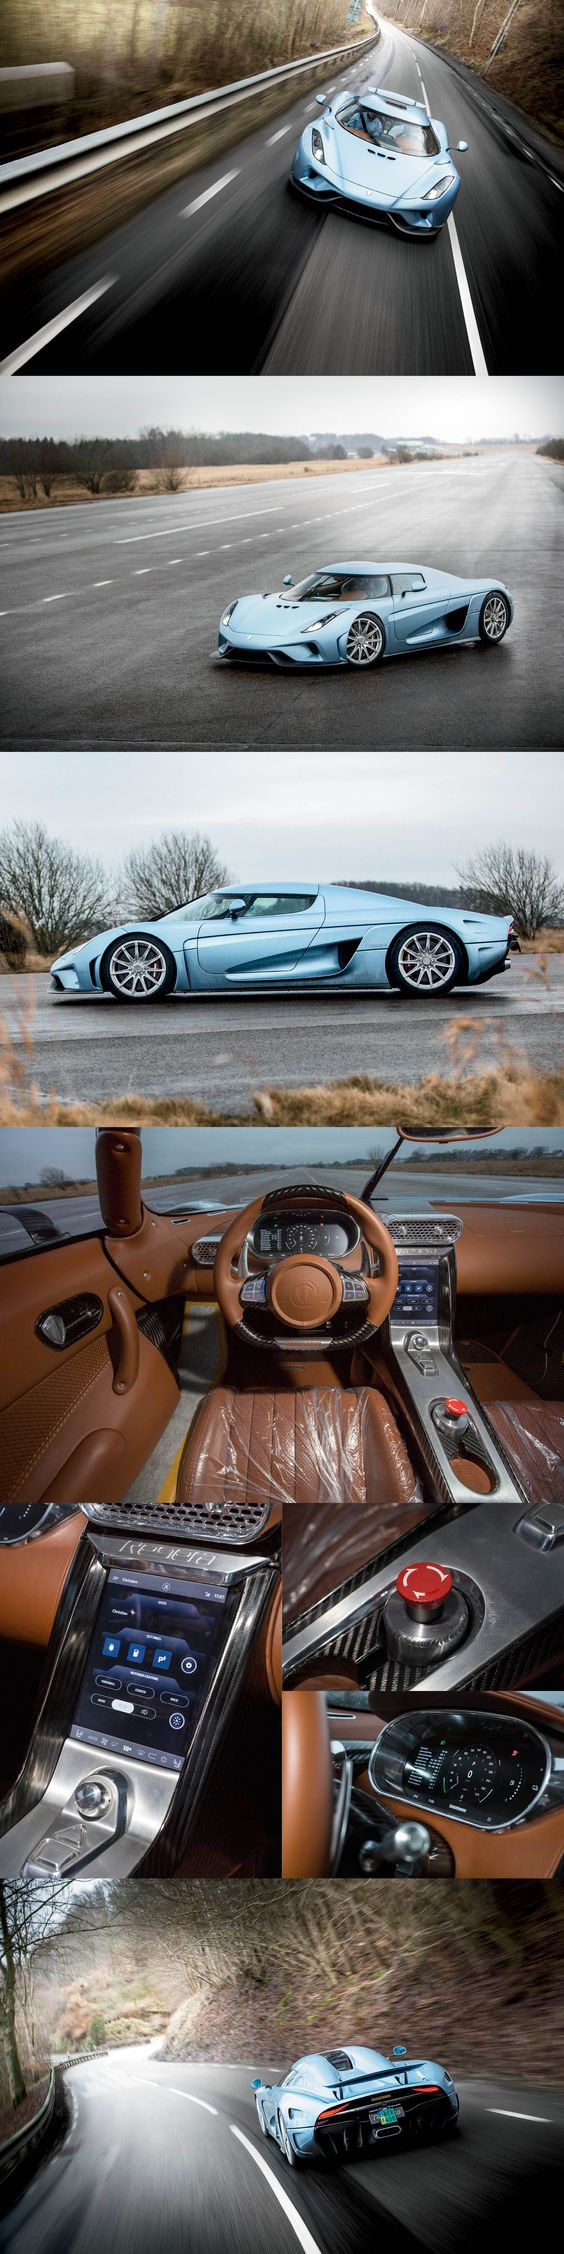 "MUST SEE "" 2017 Koenigsegg Regera Prototype "", 2017 Concept Car Photos and Images, 2017 Cars"